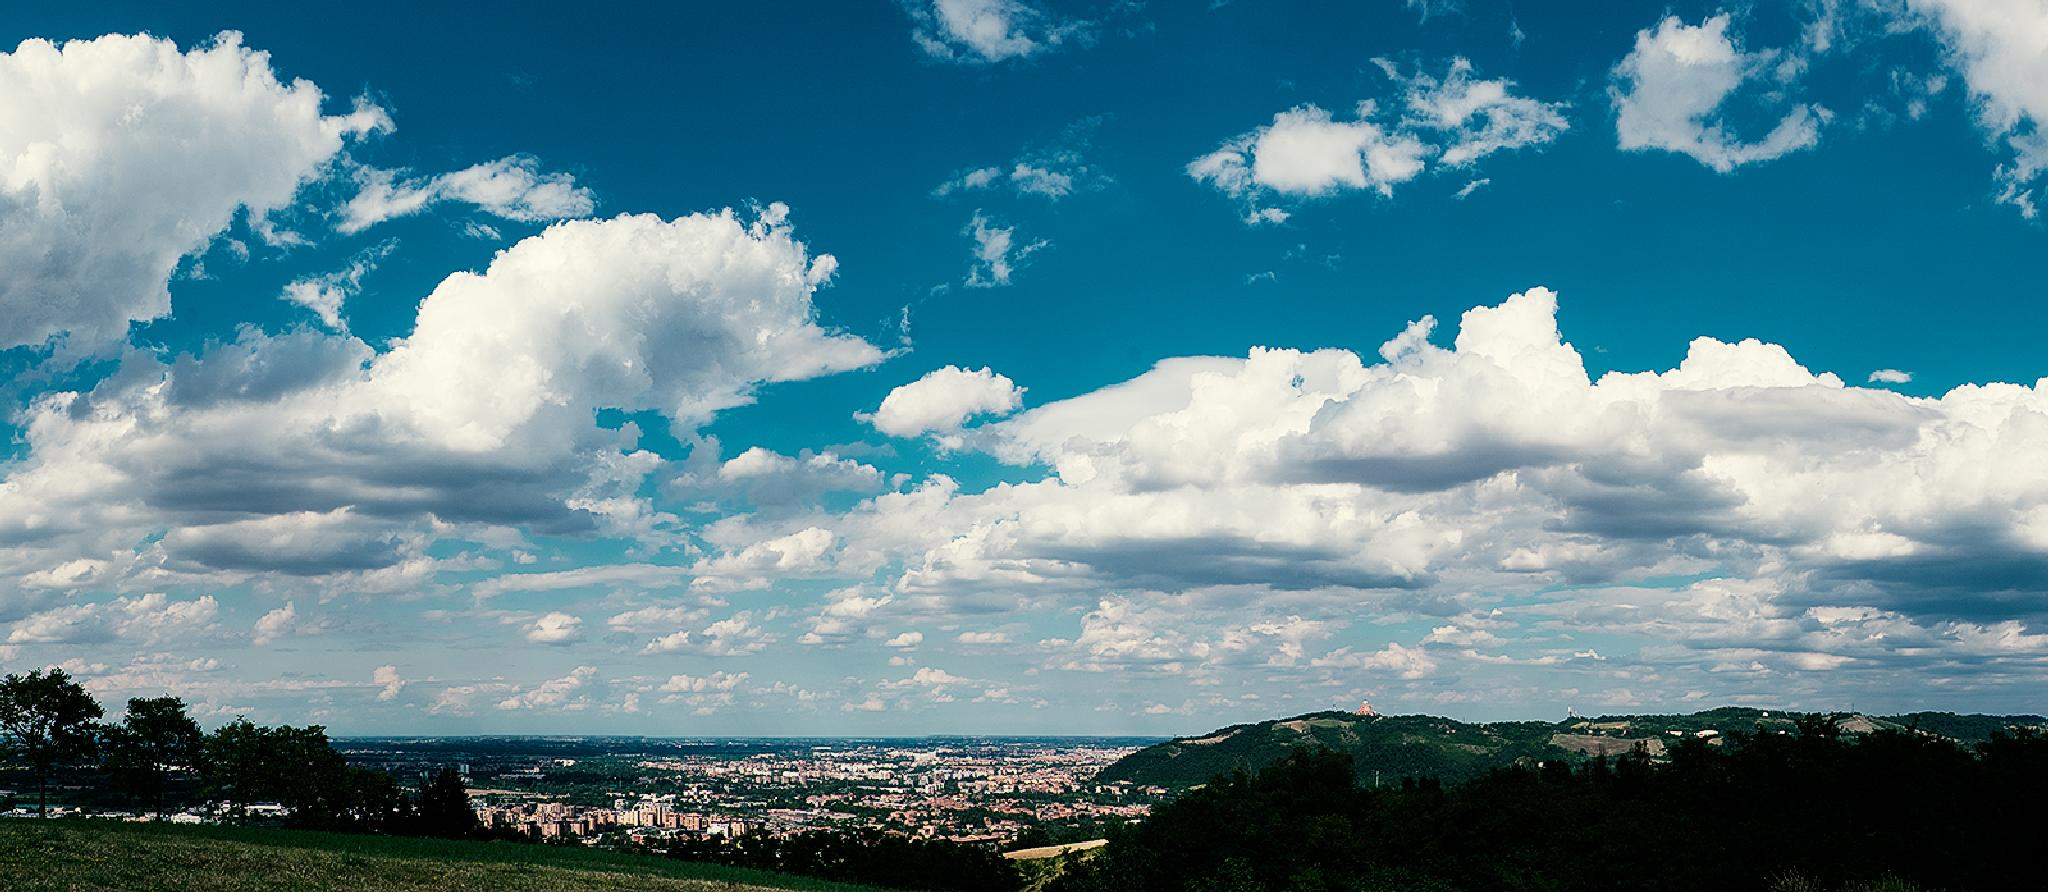 CITY OF BOLOGNA ... UNUSUAL LANDSCAPE ! by a c photos